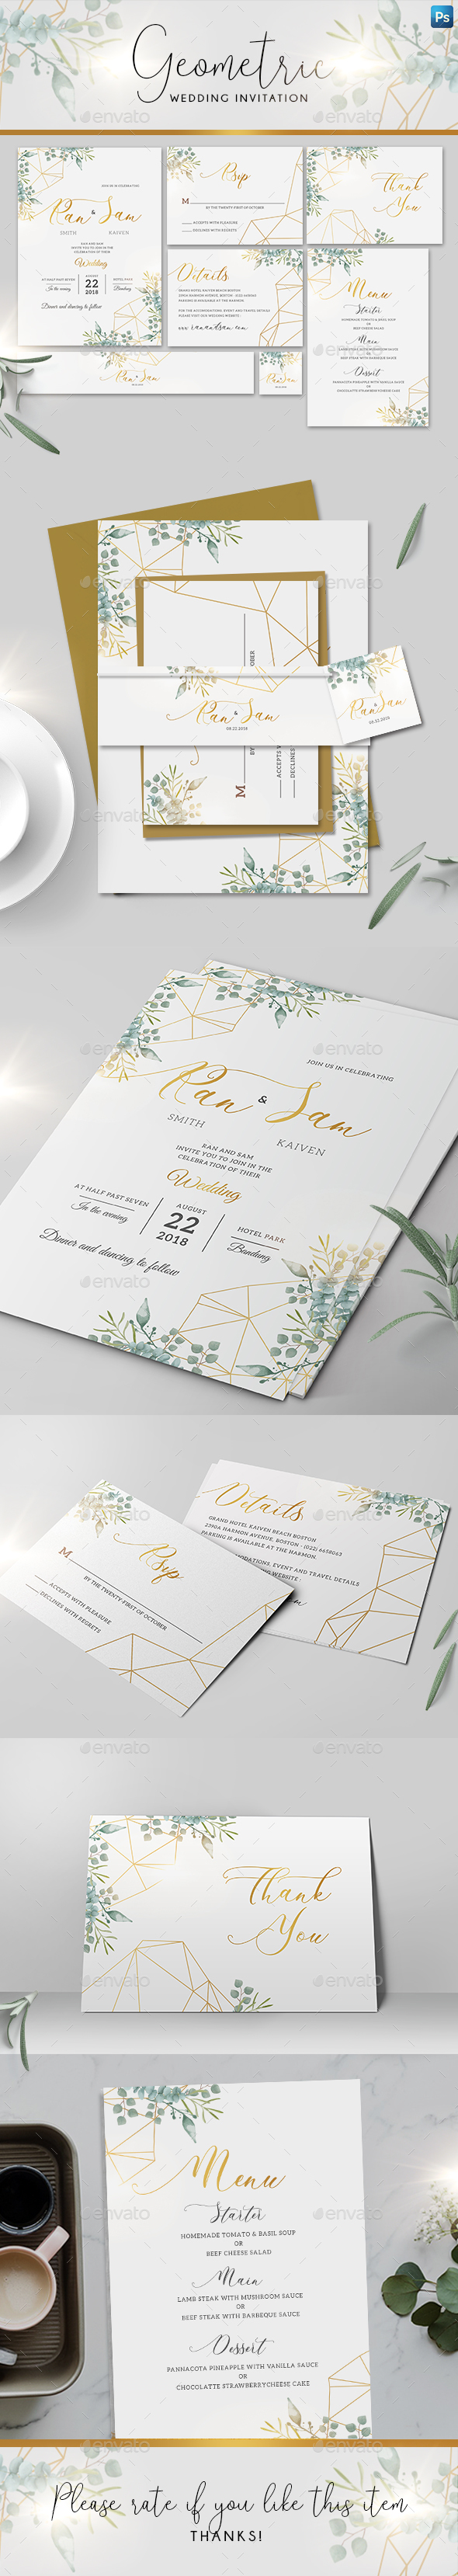 Save The Date Graphics Designs Templates From Graphicriver